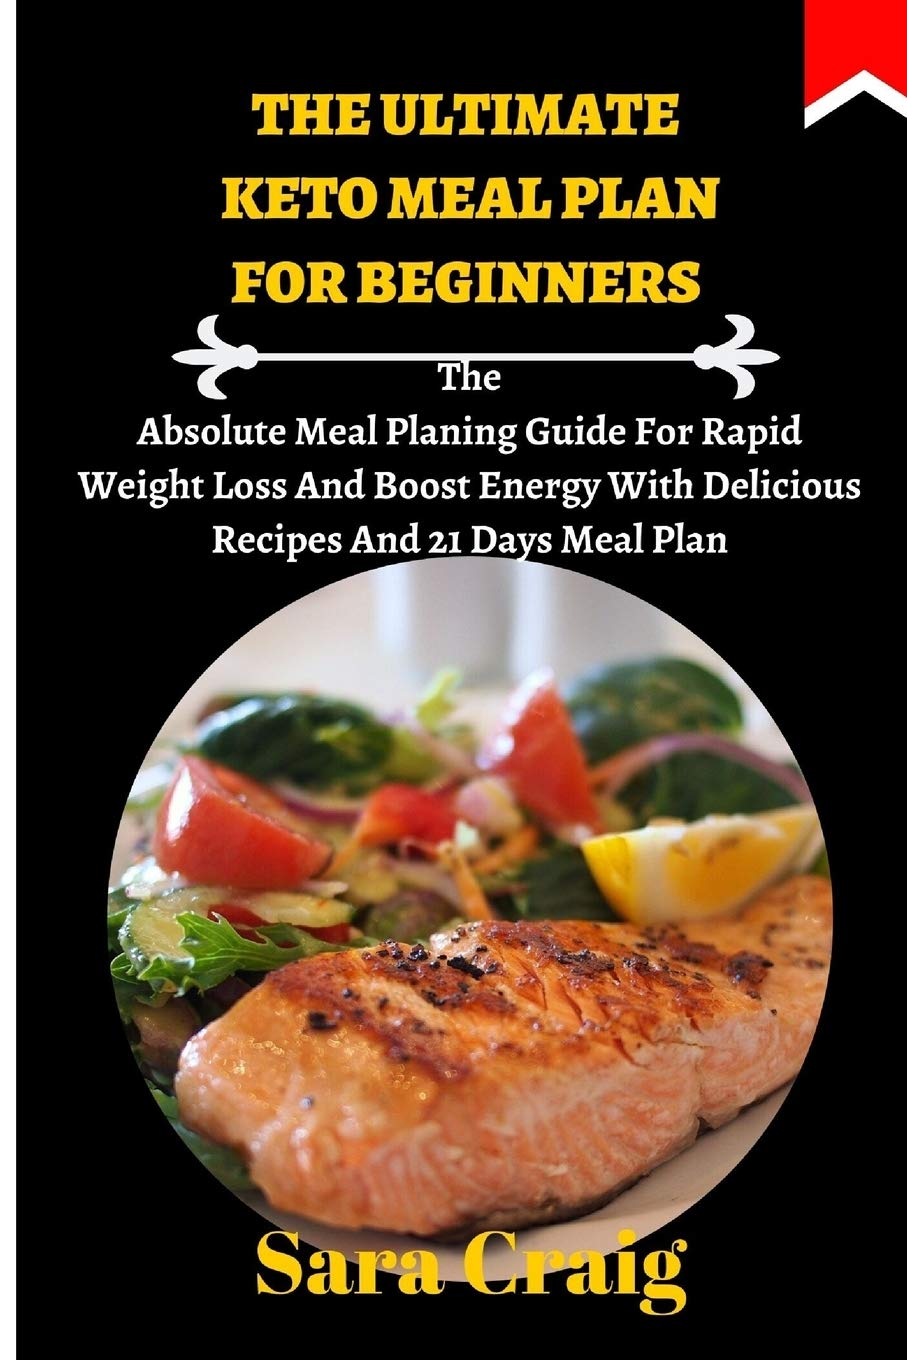 The Ultimate Keto Meal Plan For Beginners: The Absolute Meal Planing Guide For Rapid Weight Loss And Boost Energy With Delicious Recipes And 21 Days Meal Plan 1